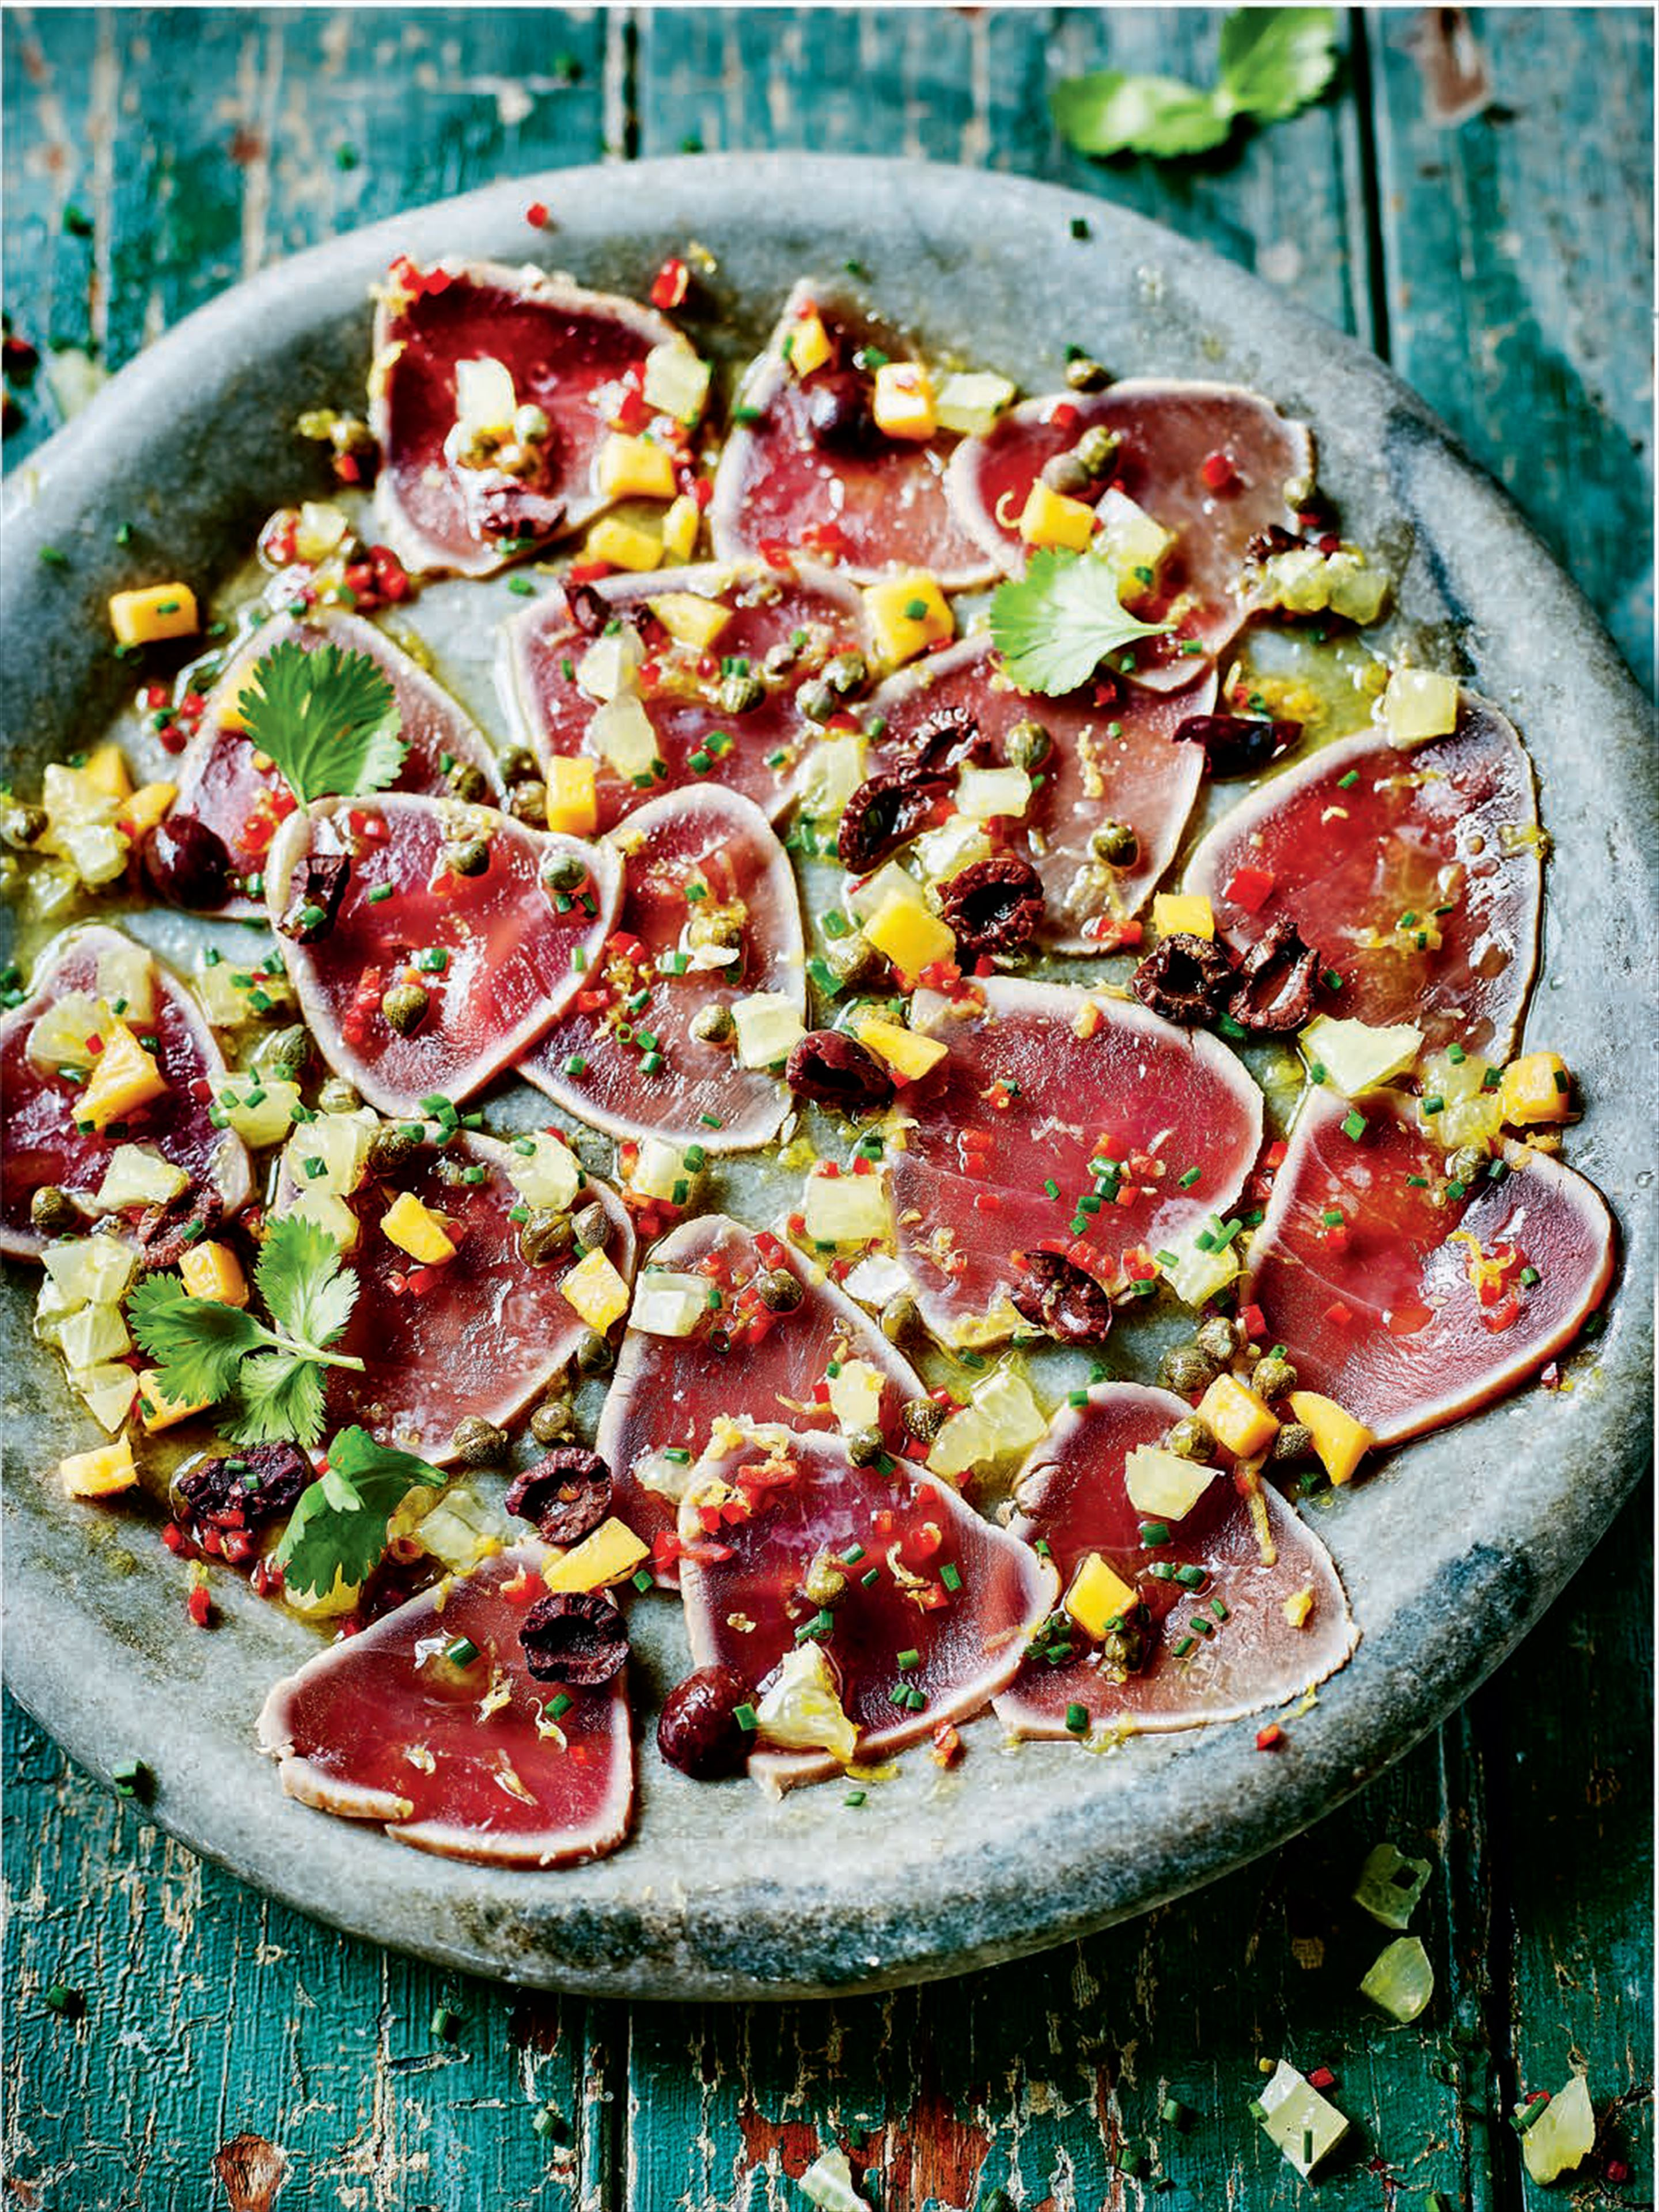 Tuna carpaccio with olive, mango and caper dressing